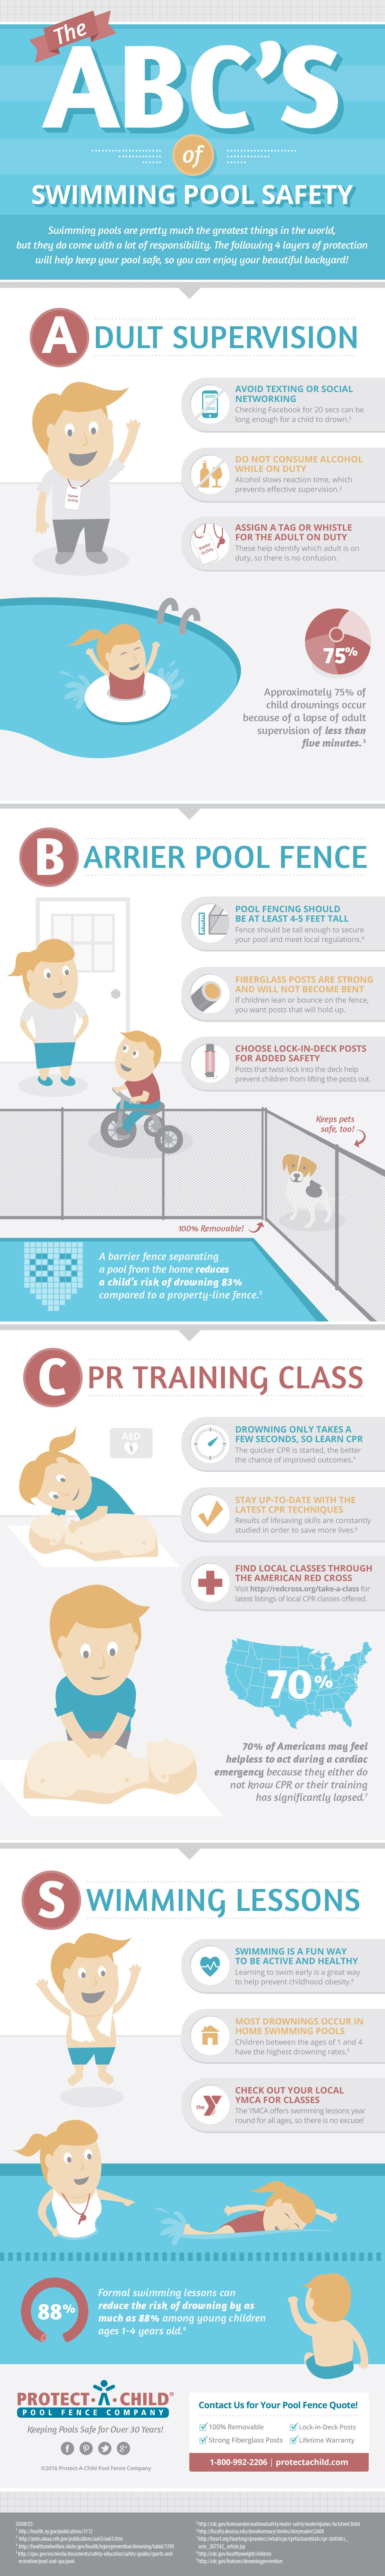 The abc 39 s of swimming pool safety infographic pools - Swimming pool maintenance training ...